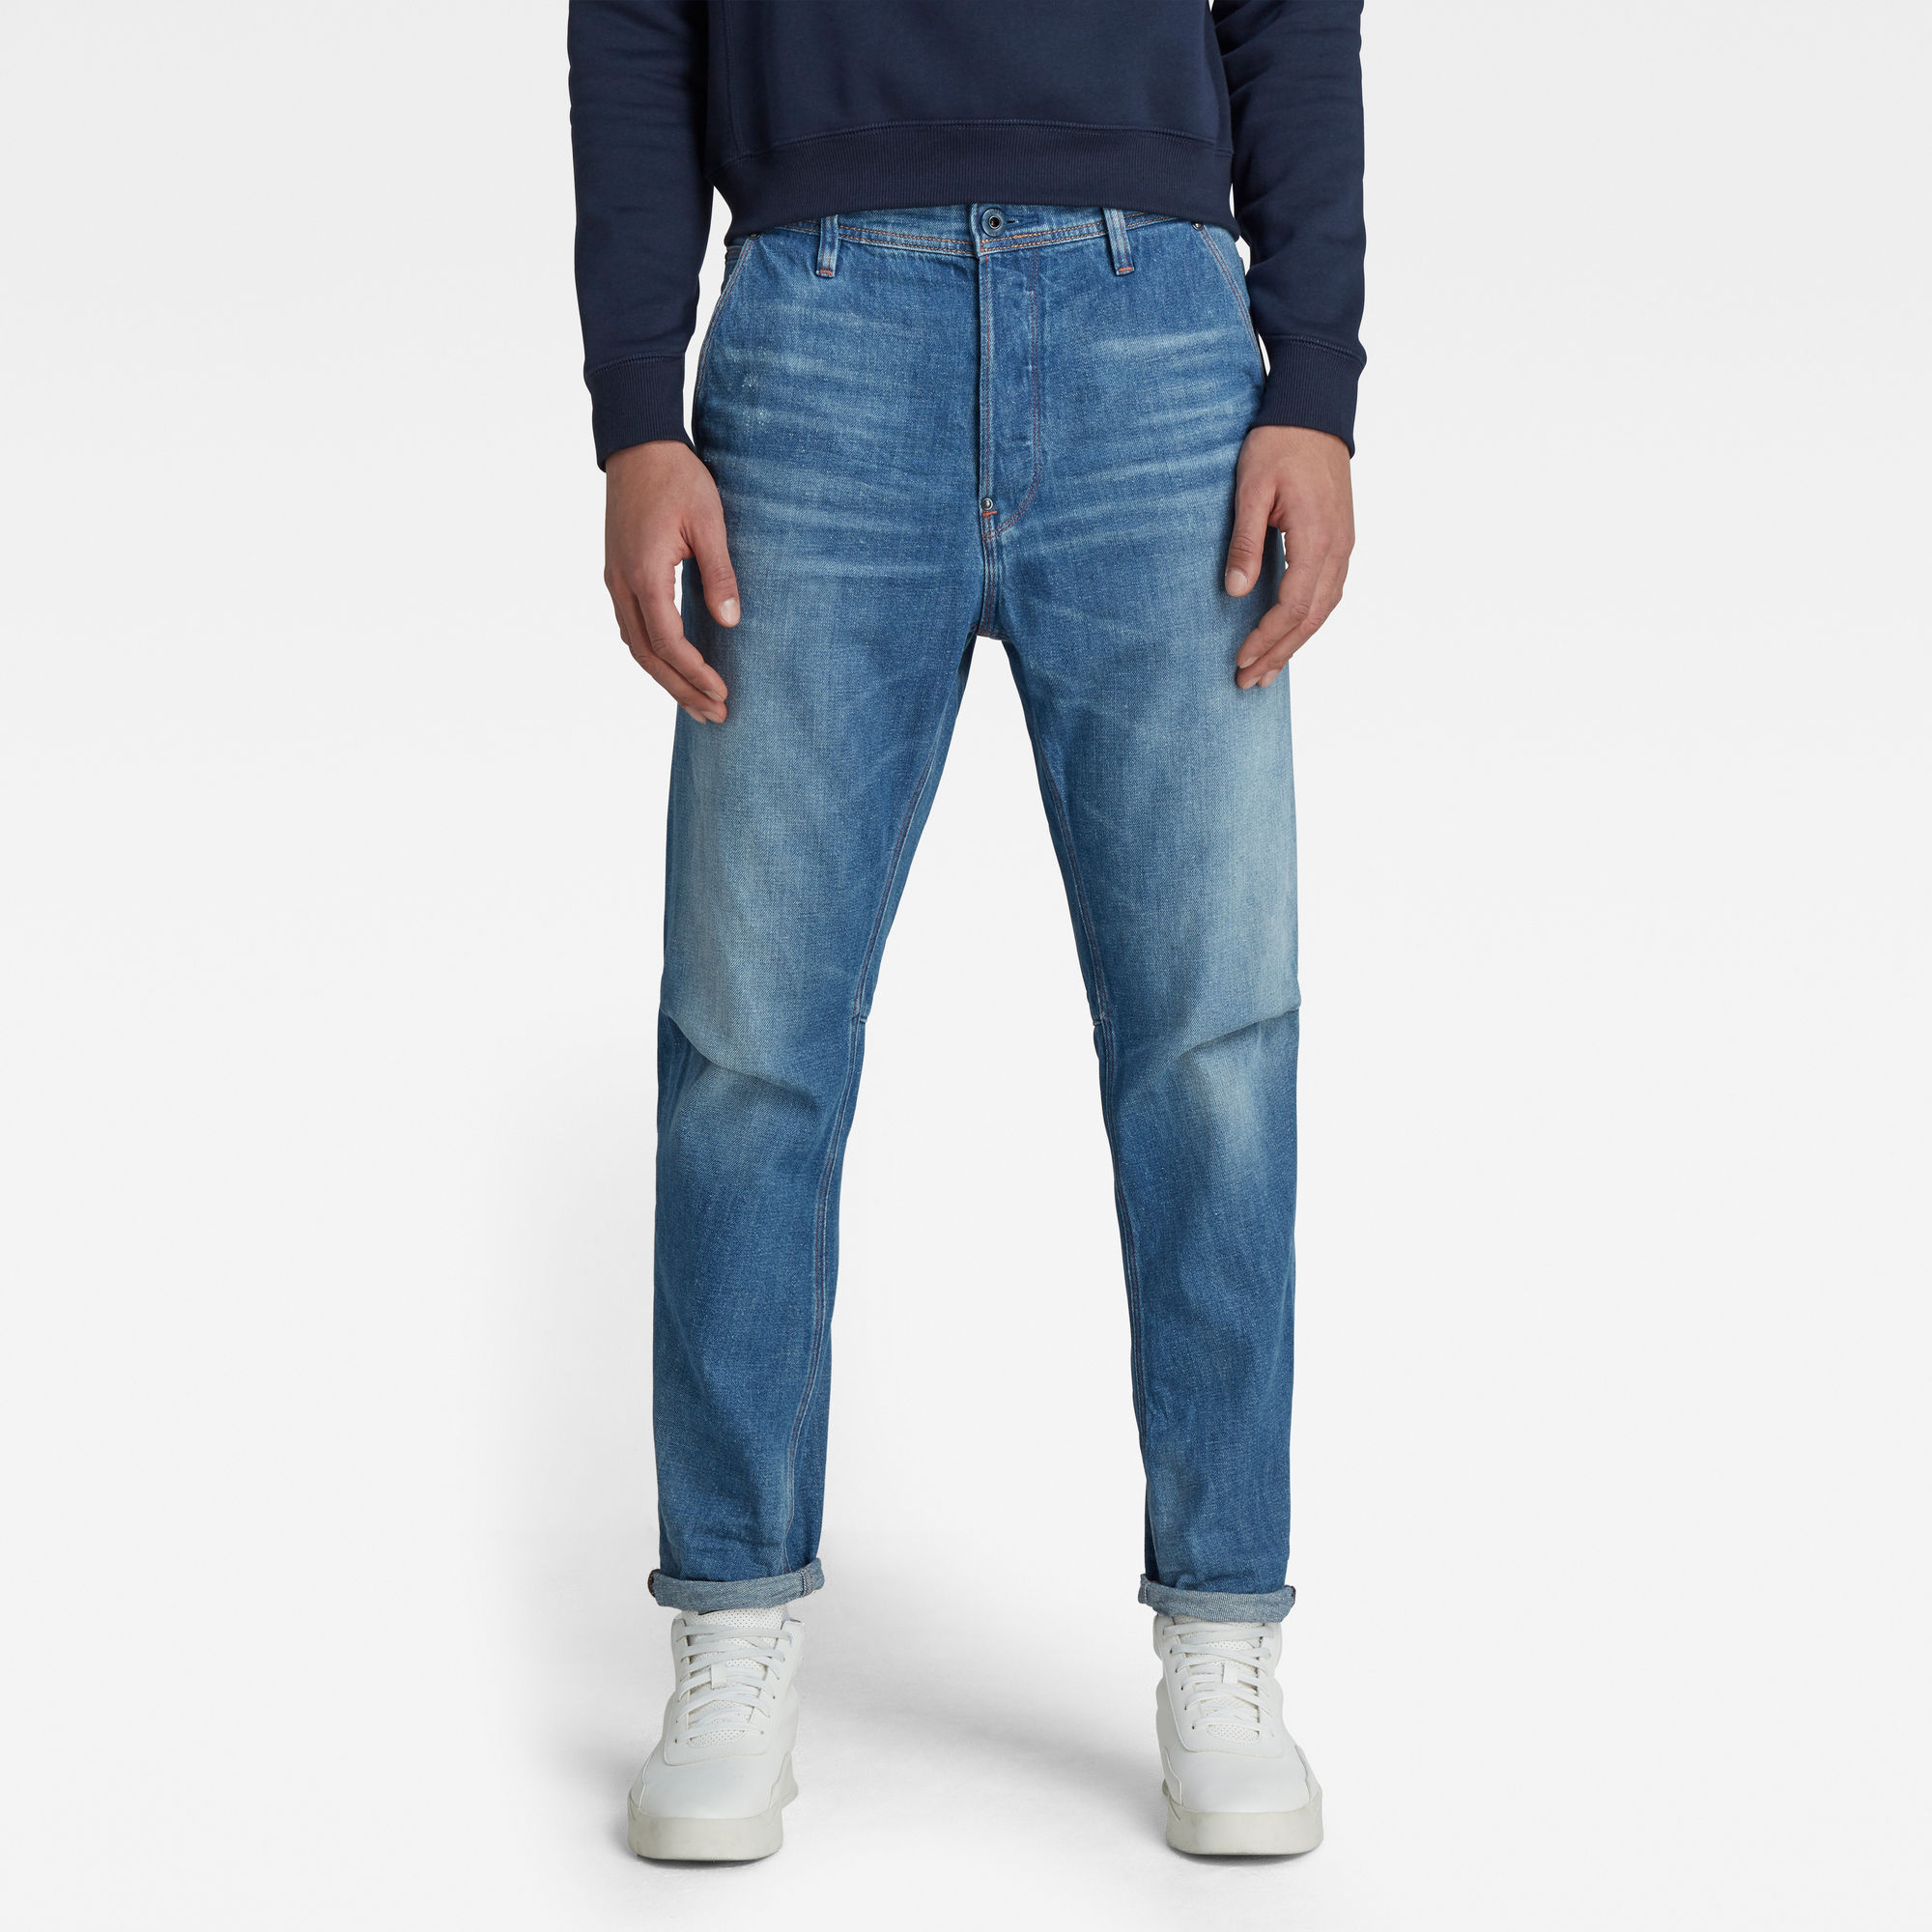 G-Star RAW Heren Grip 3D Relaxed Tapered Jeans Lichtblauw